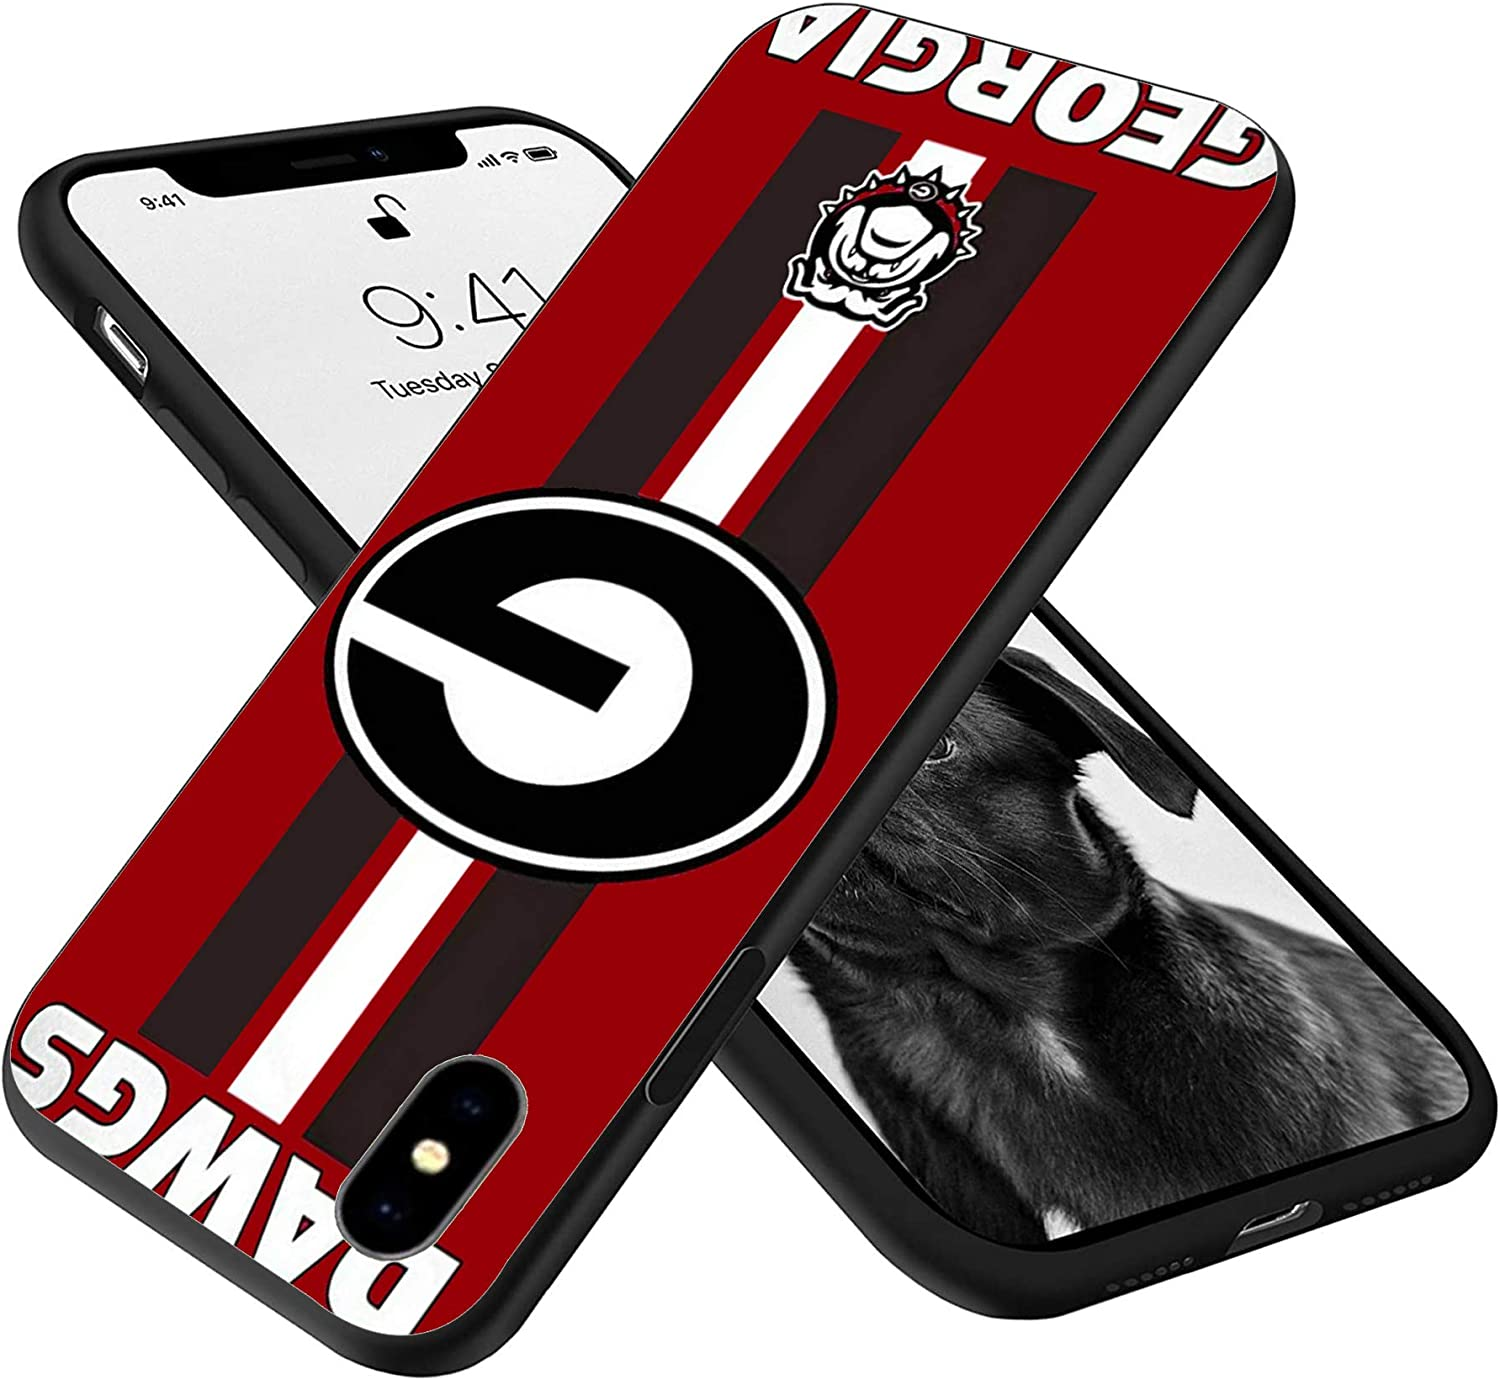 Silicone Case for iPhone XR, Silky-Soft Touch Full-Body Protective Case Personalized Design (Bulldogs-GG-2)